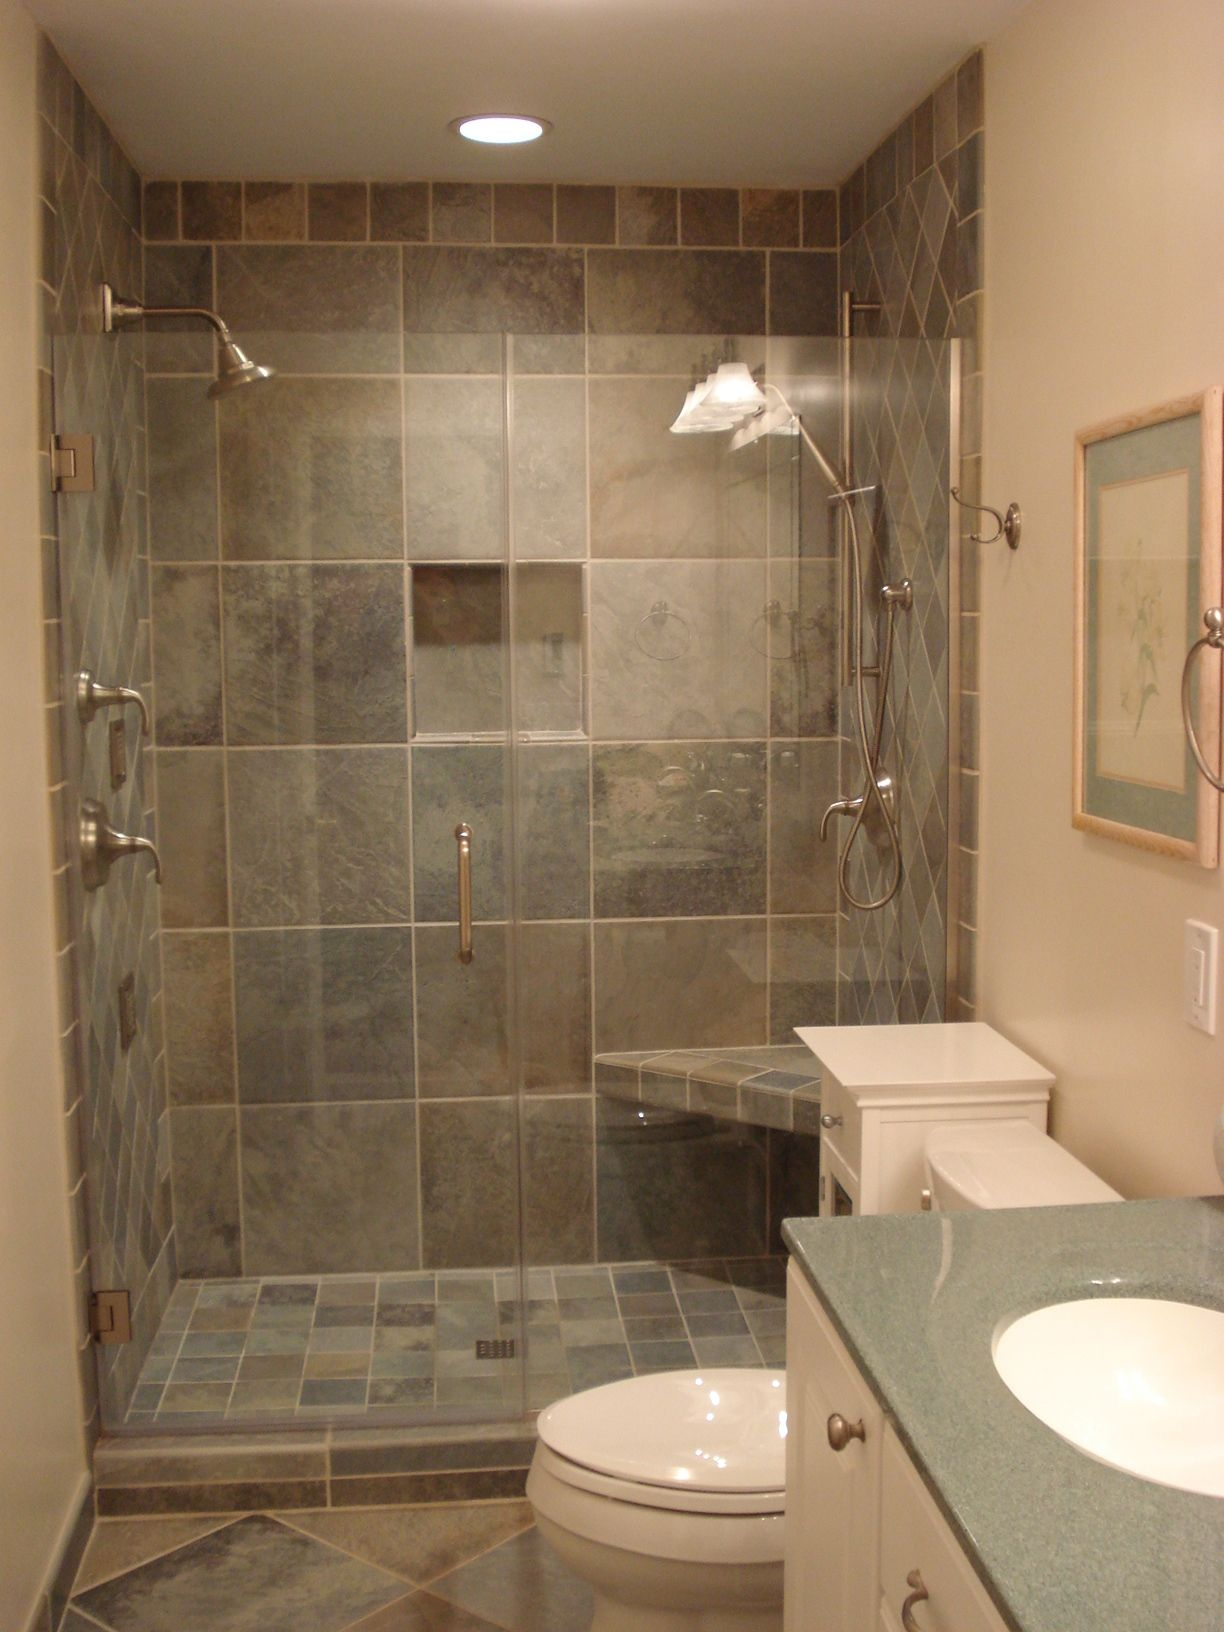 Bathroom shower ideas on a budget - Incredible Best Small Bathroom Bathroom Renovations Ideas Bathroom